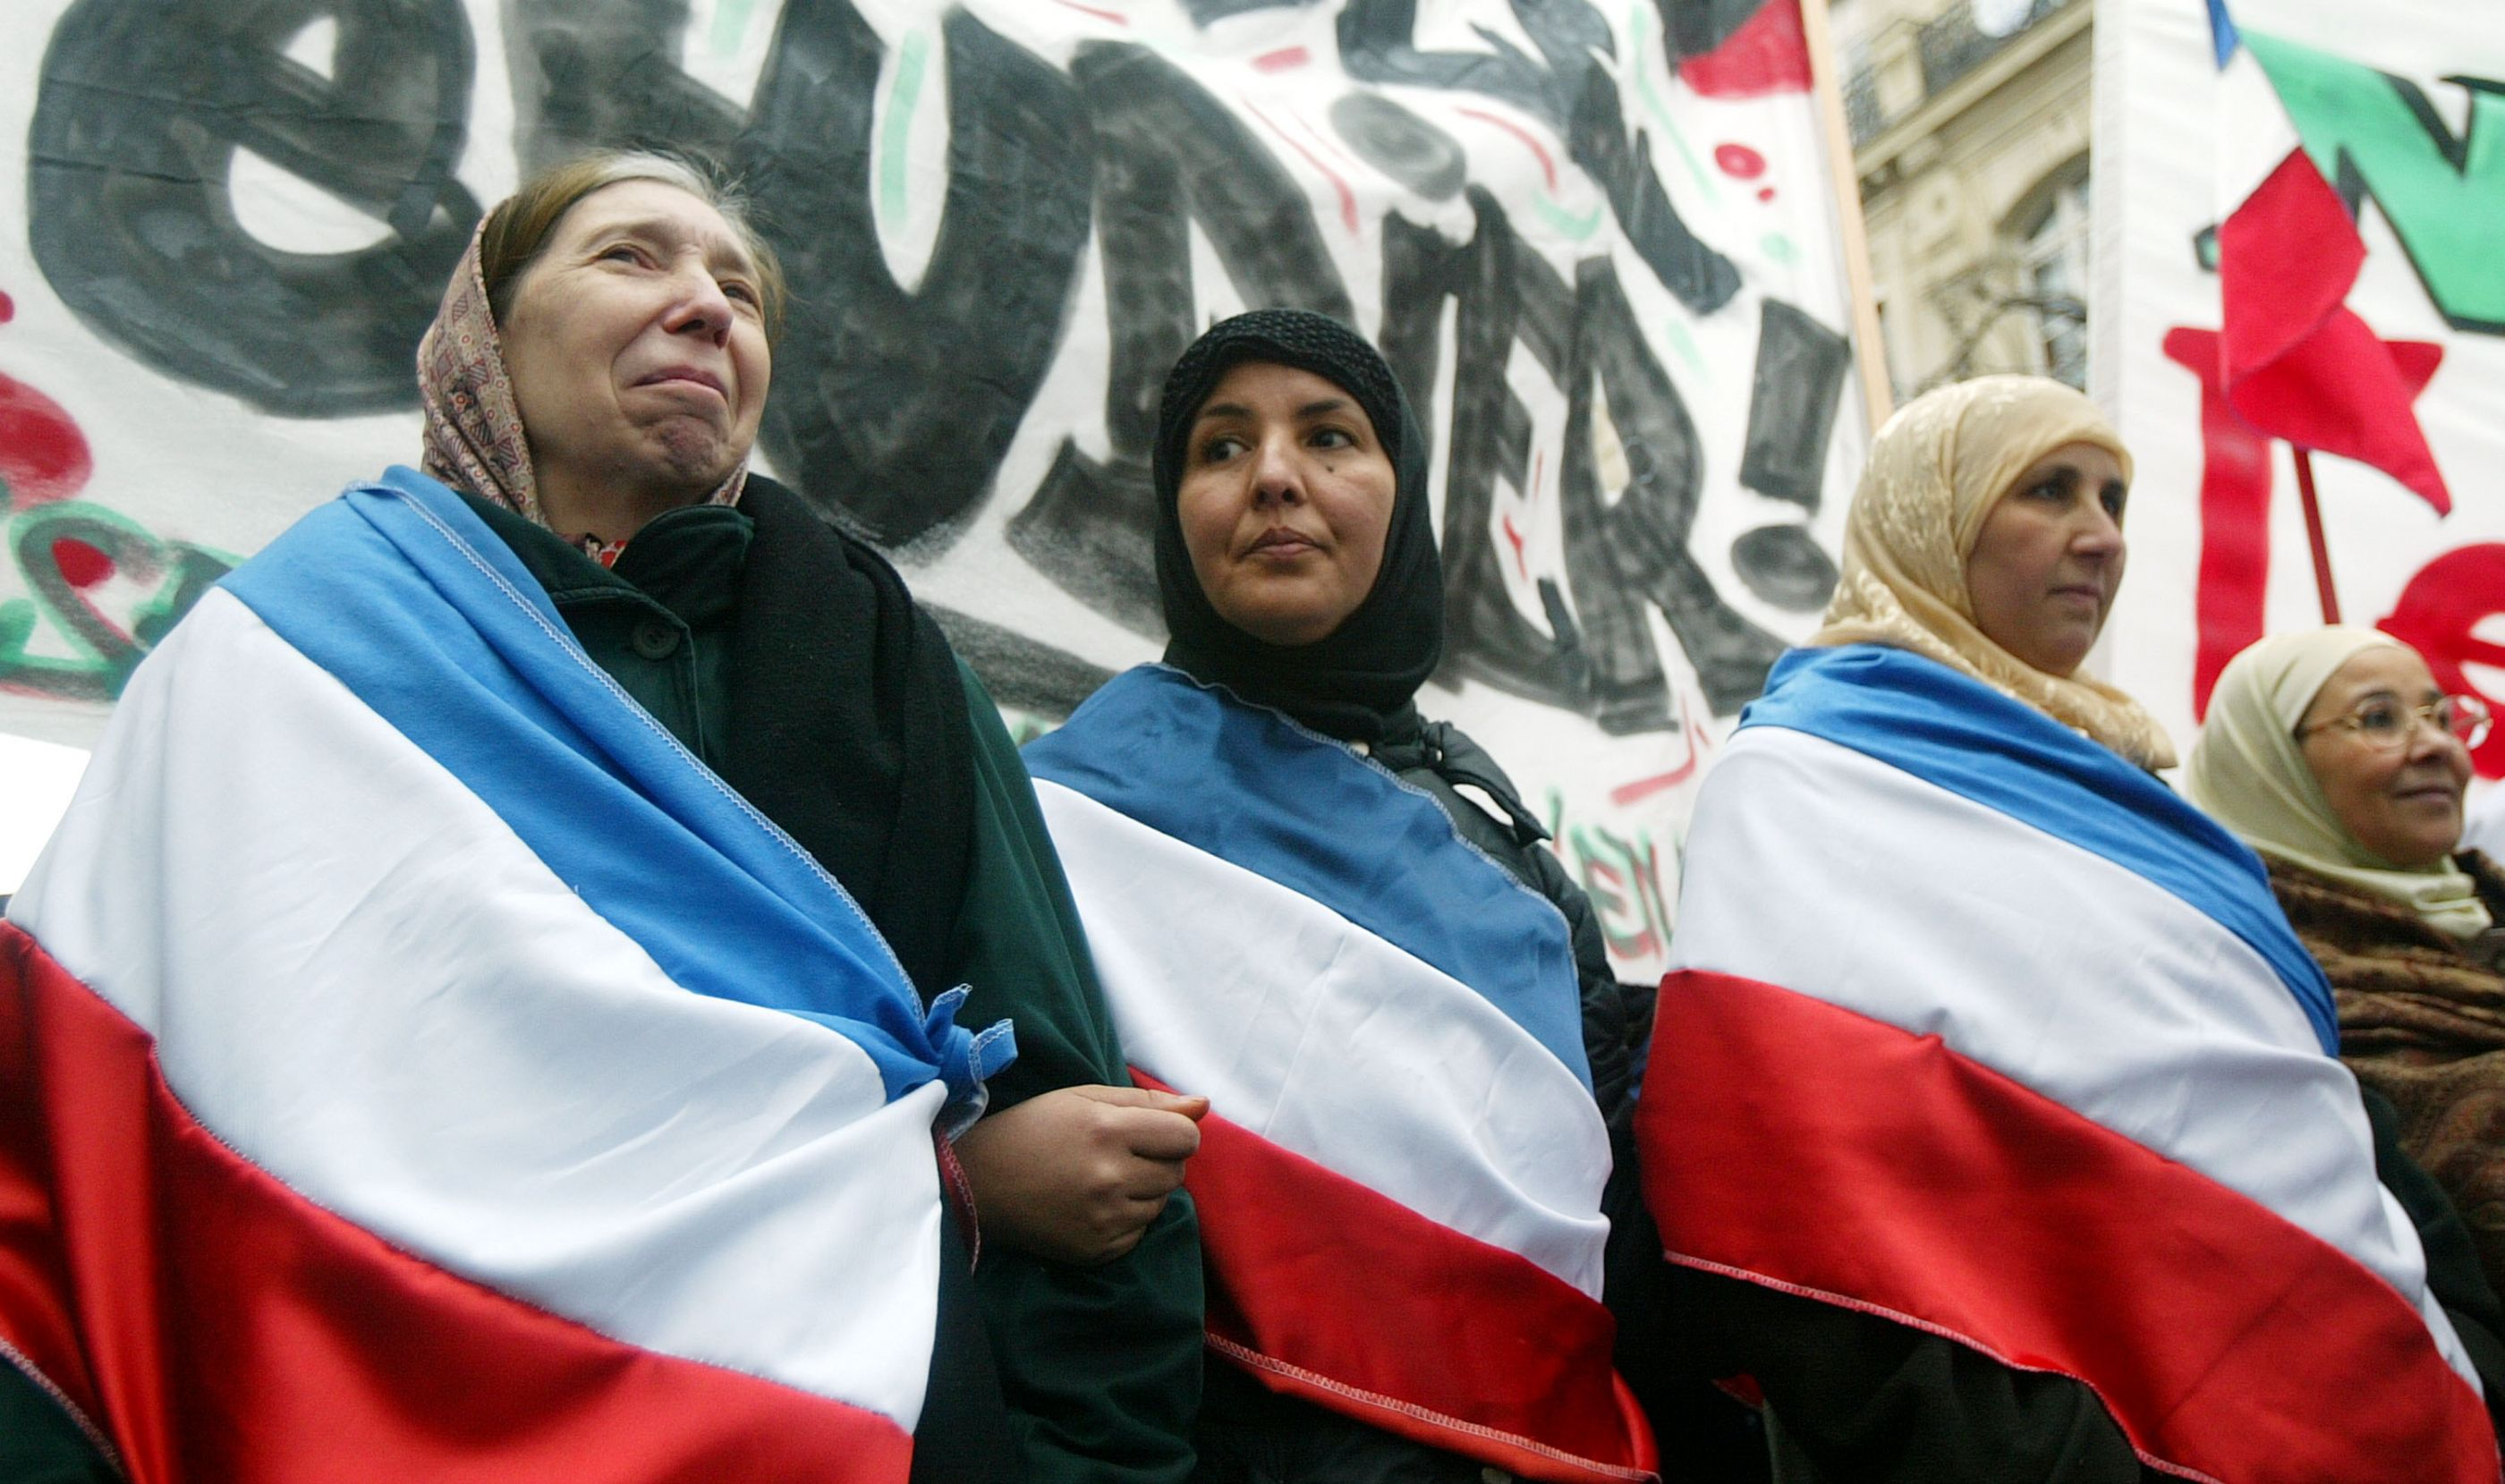 WE, FRENCH MUSLIMS